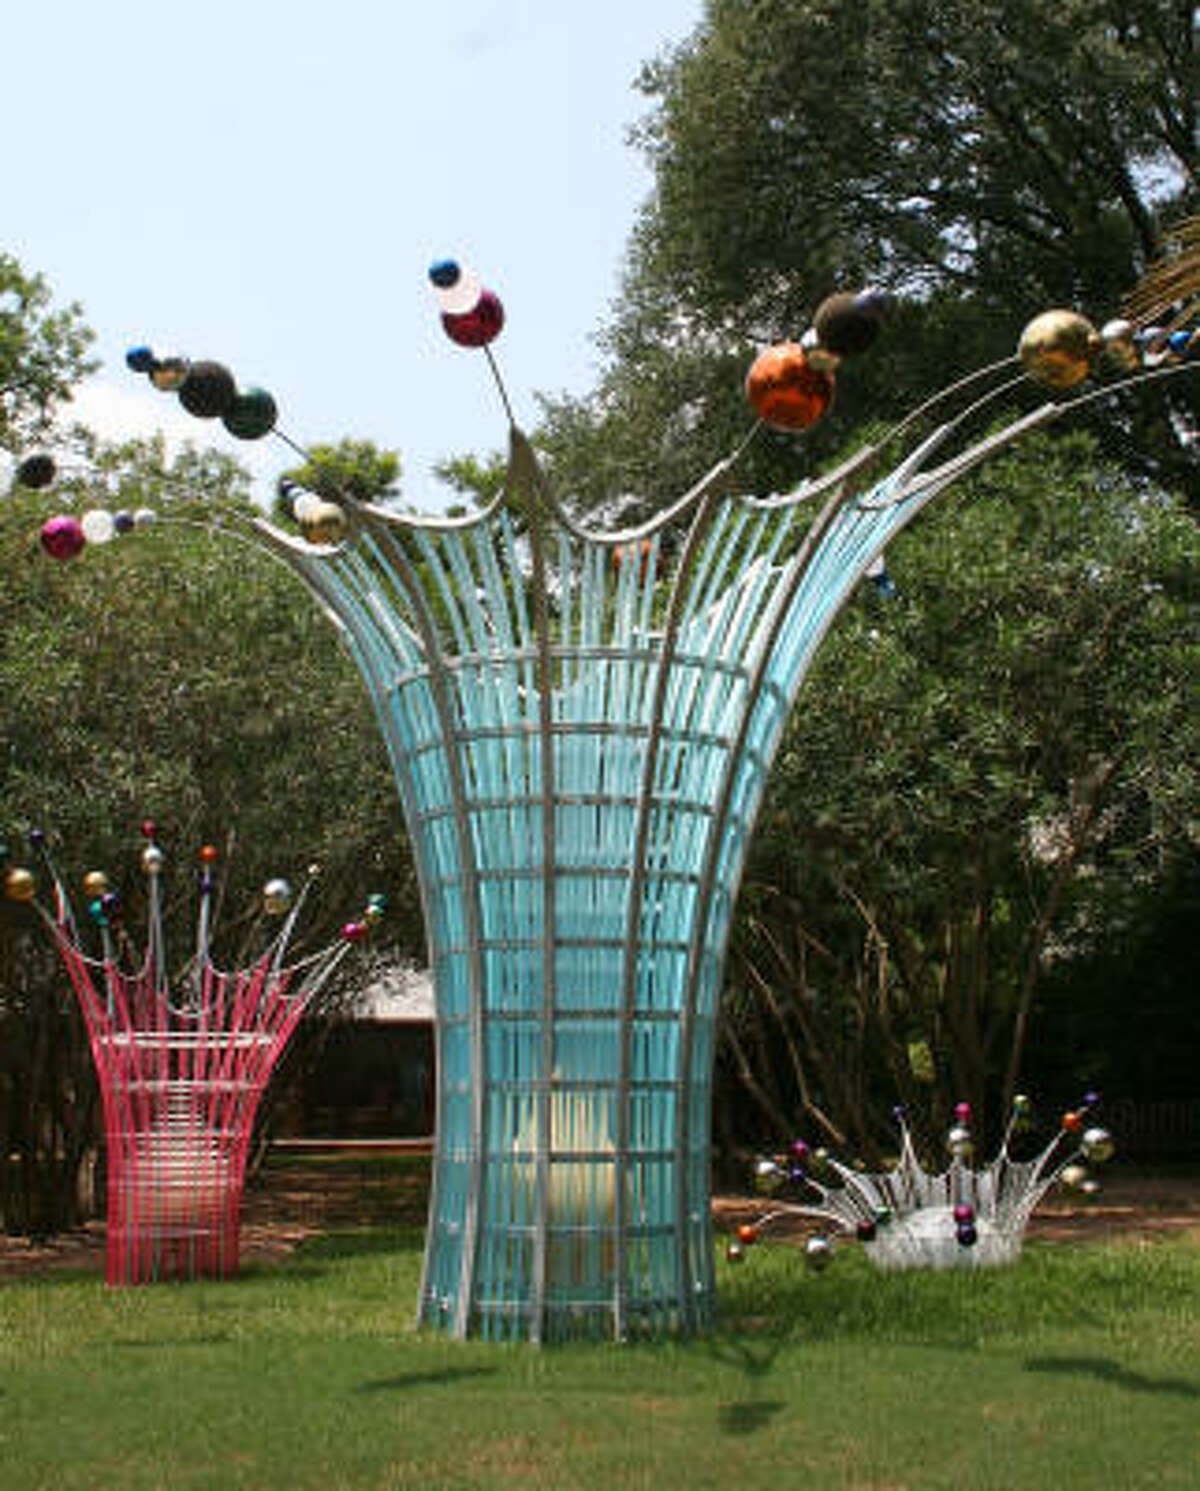 The Dennis Oppenheim creation includes three sculptures (from left) Splash (Tall Pink), Splash and Splash (Low White). The sculptures are made with colored stainless-steel globes, powder-coated steel, stainless-steel ties and acrylic.